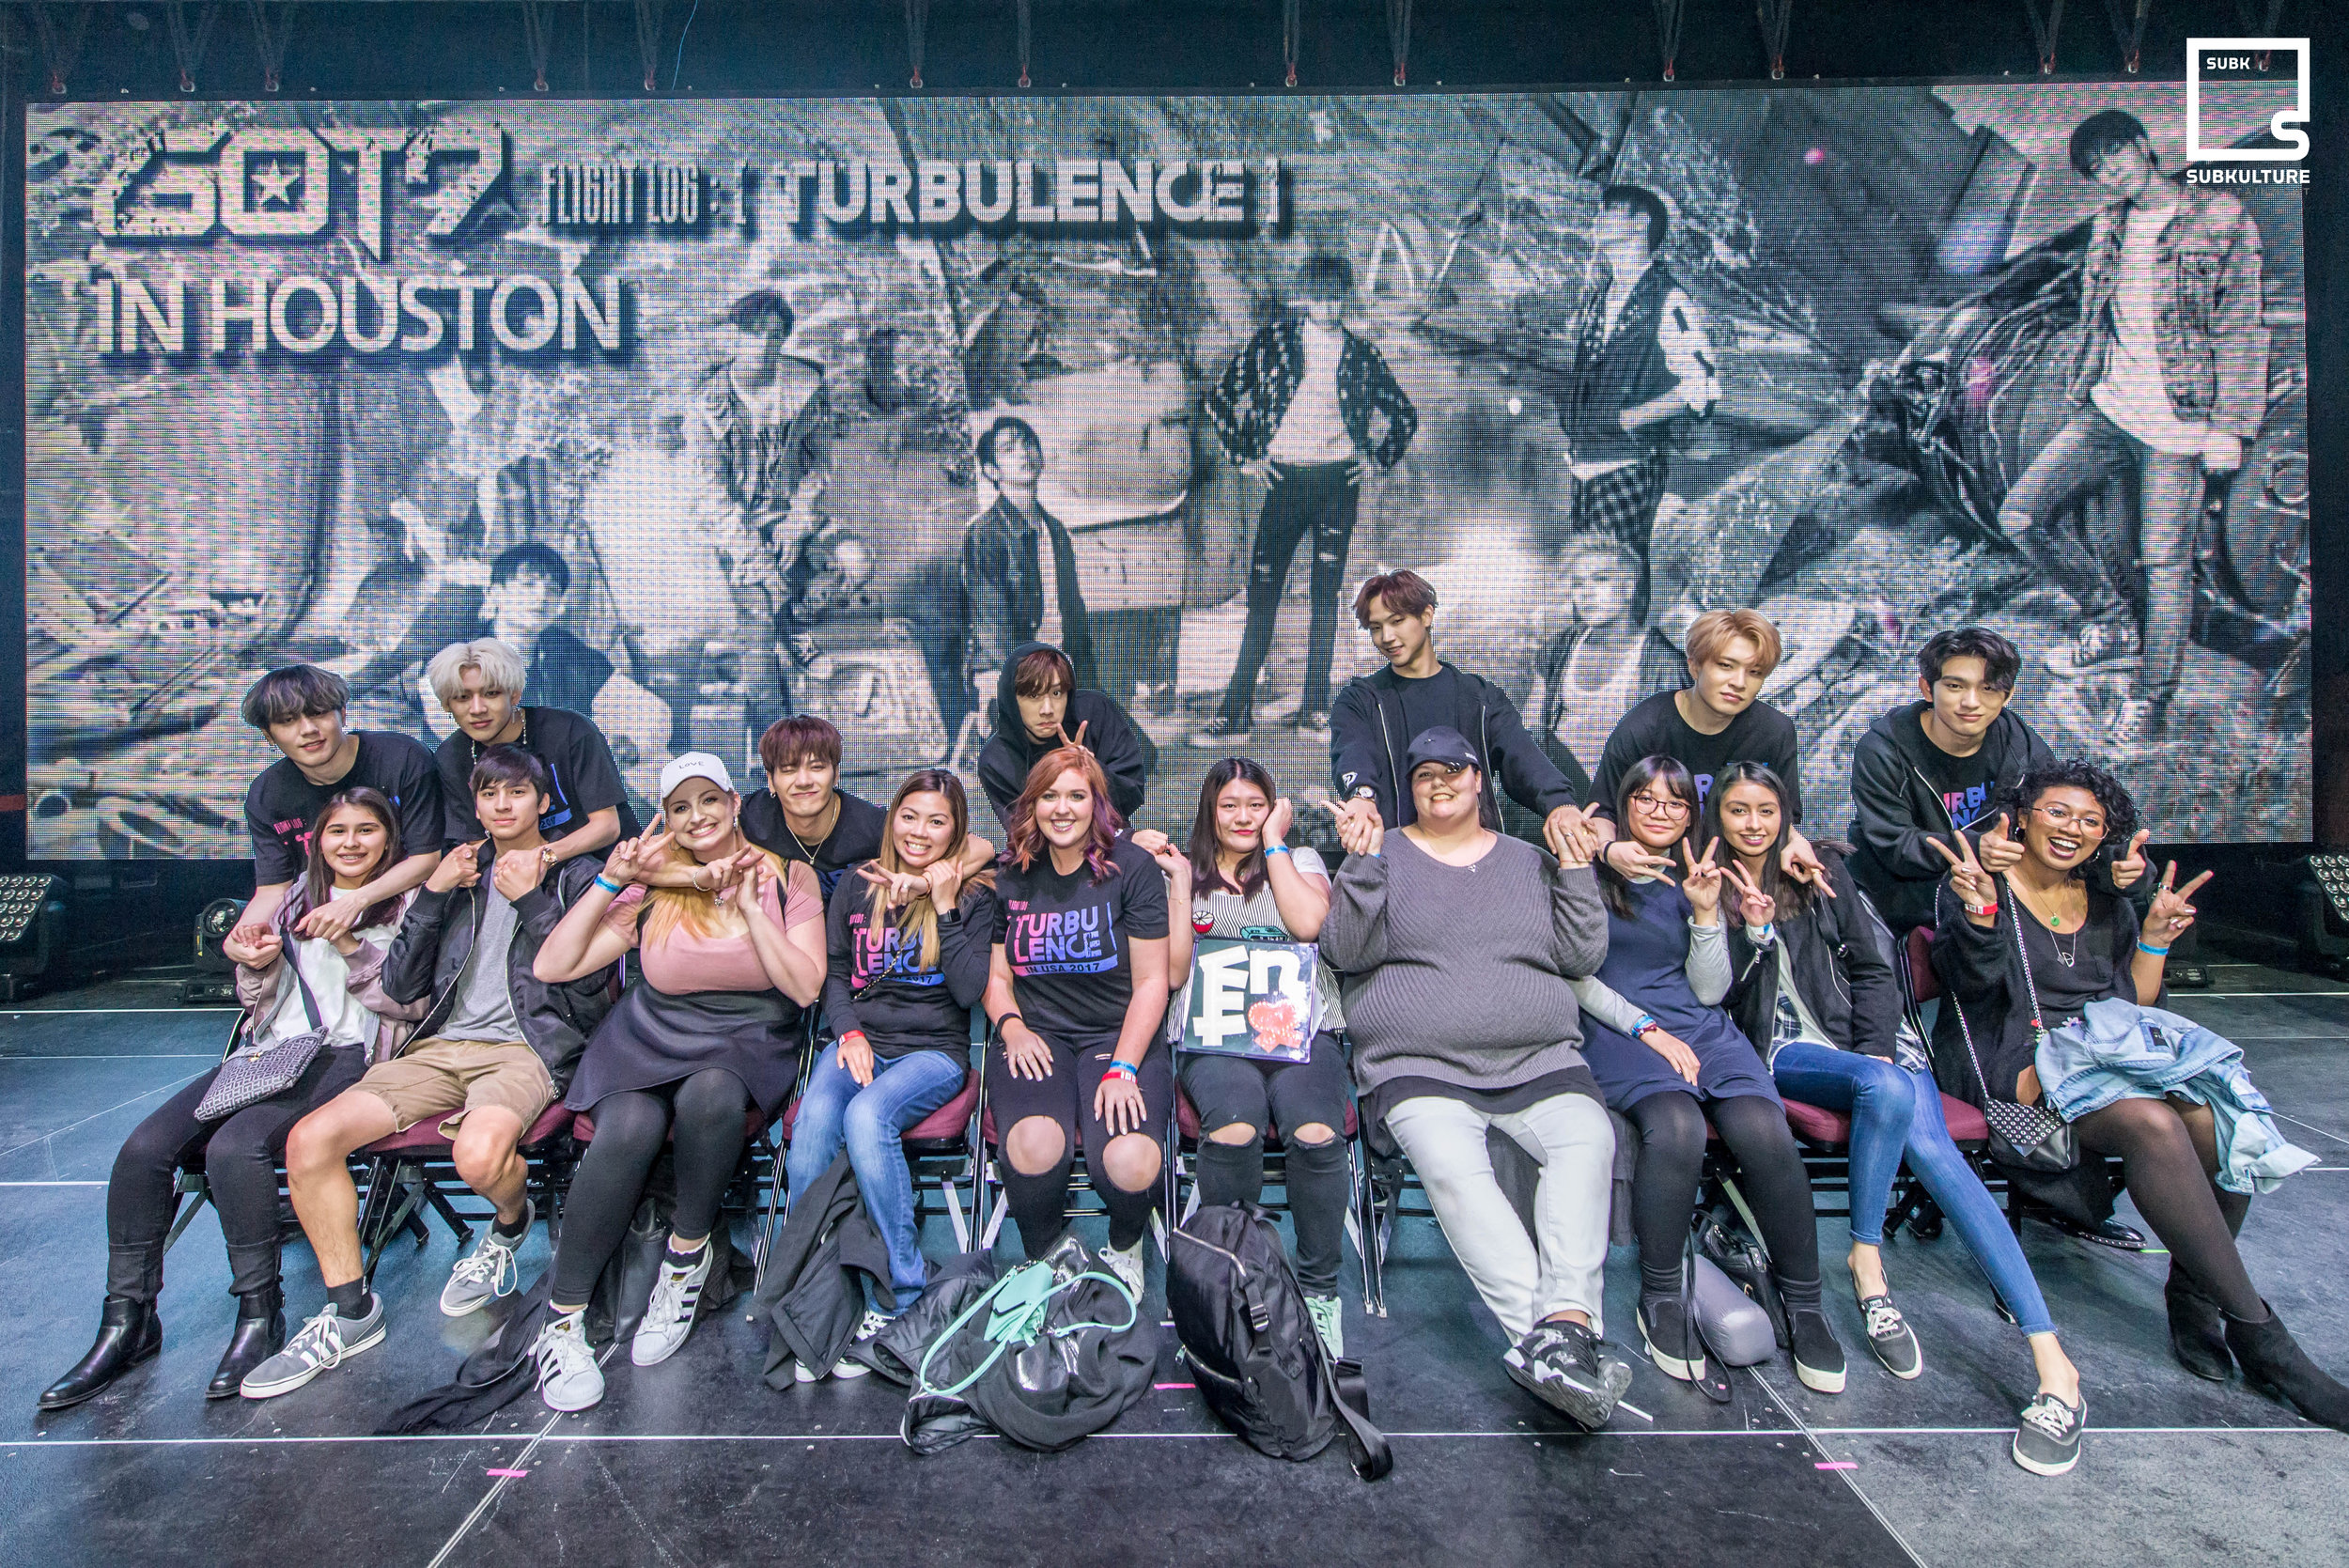 GOT7 Fan Photo Houston 2017 SubKulture Entertainment-3766 copy.jpg